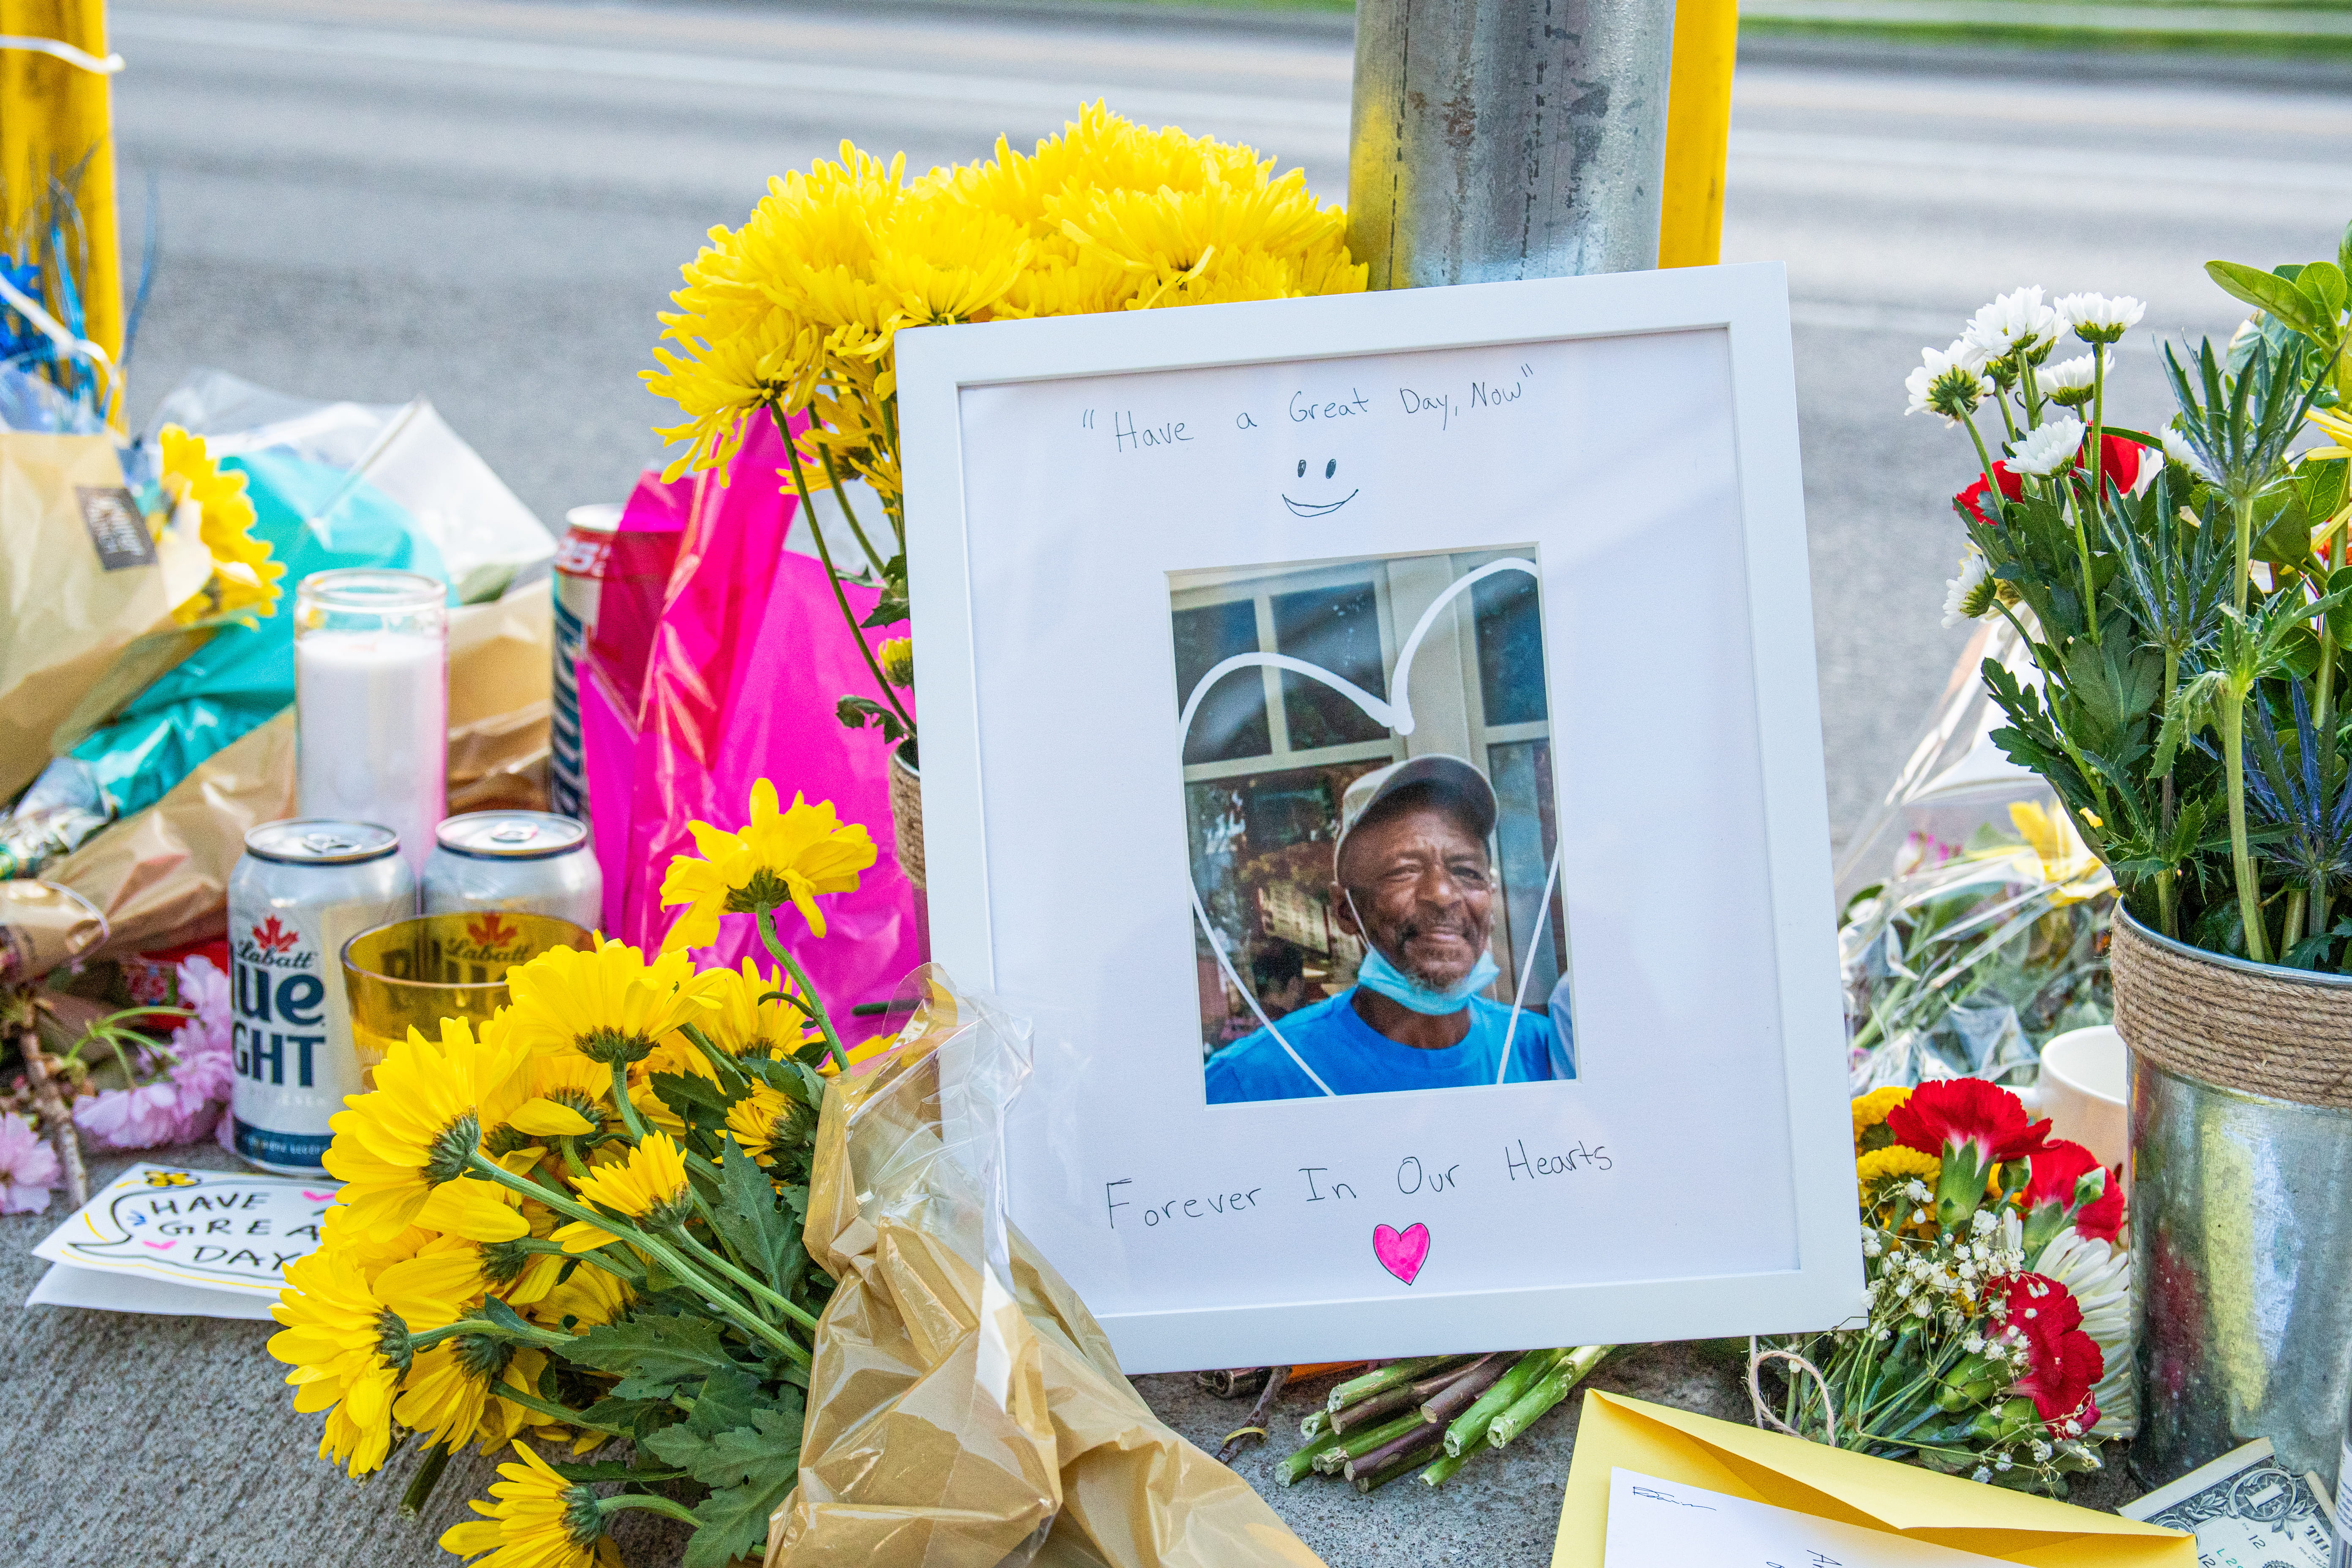 A framed picture of a Black Man sits among flowers and candles